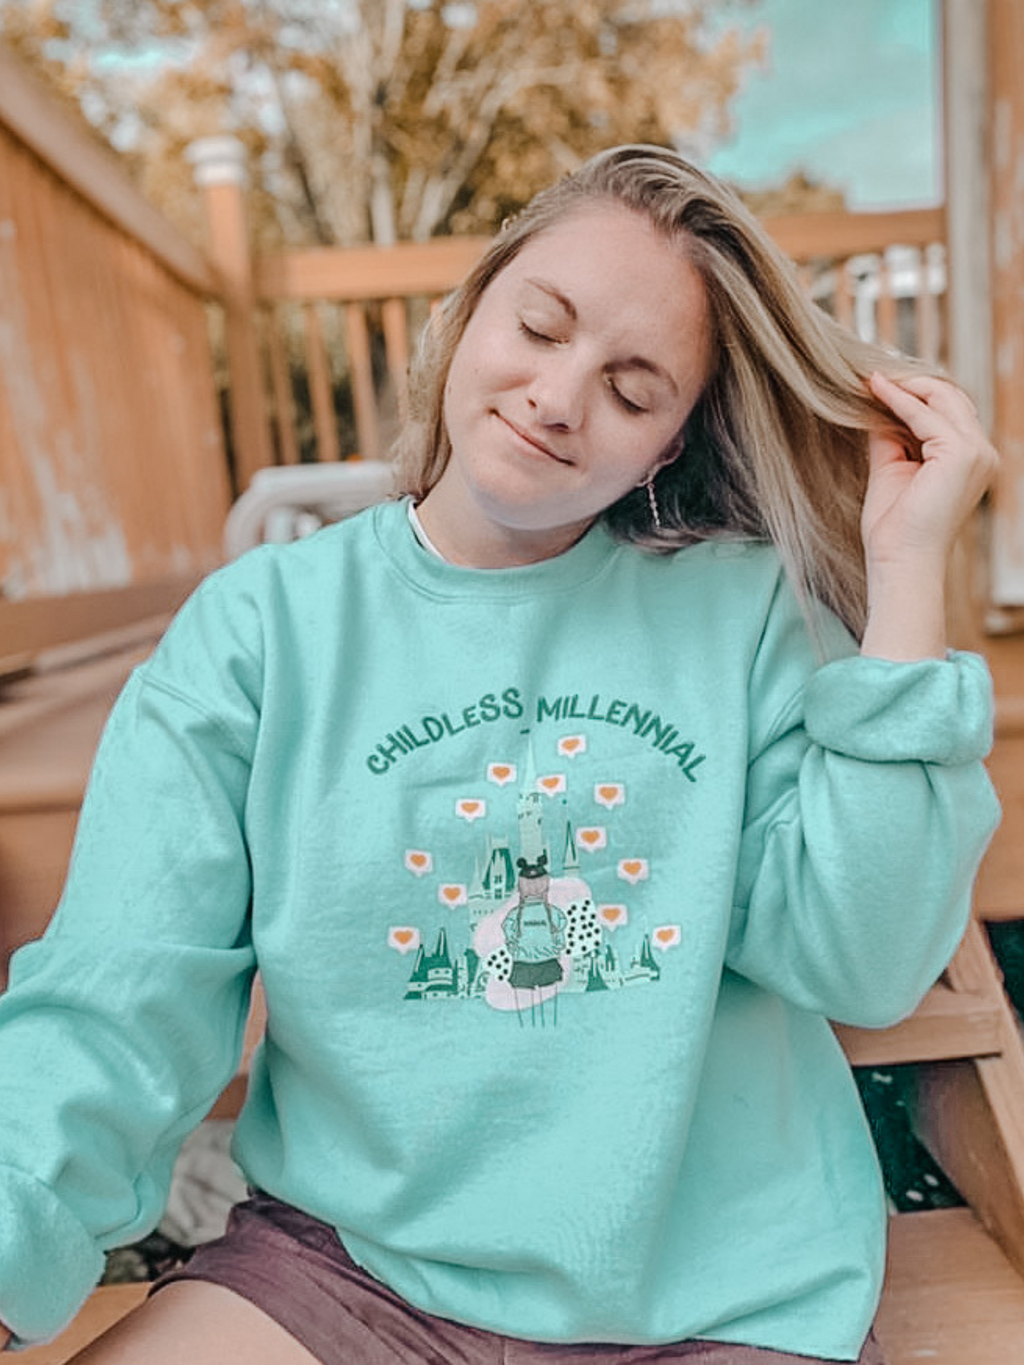 Childless Millennial Unisex Sweatshirt